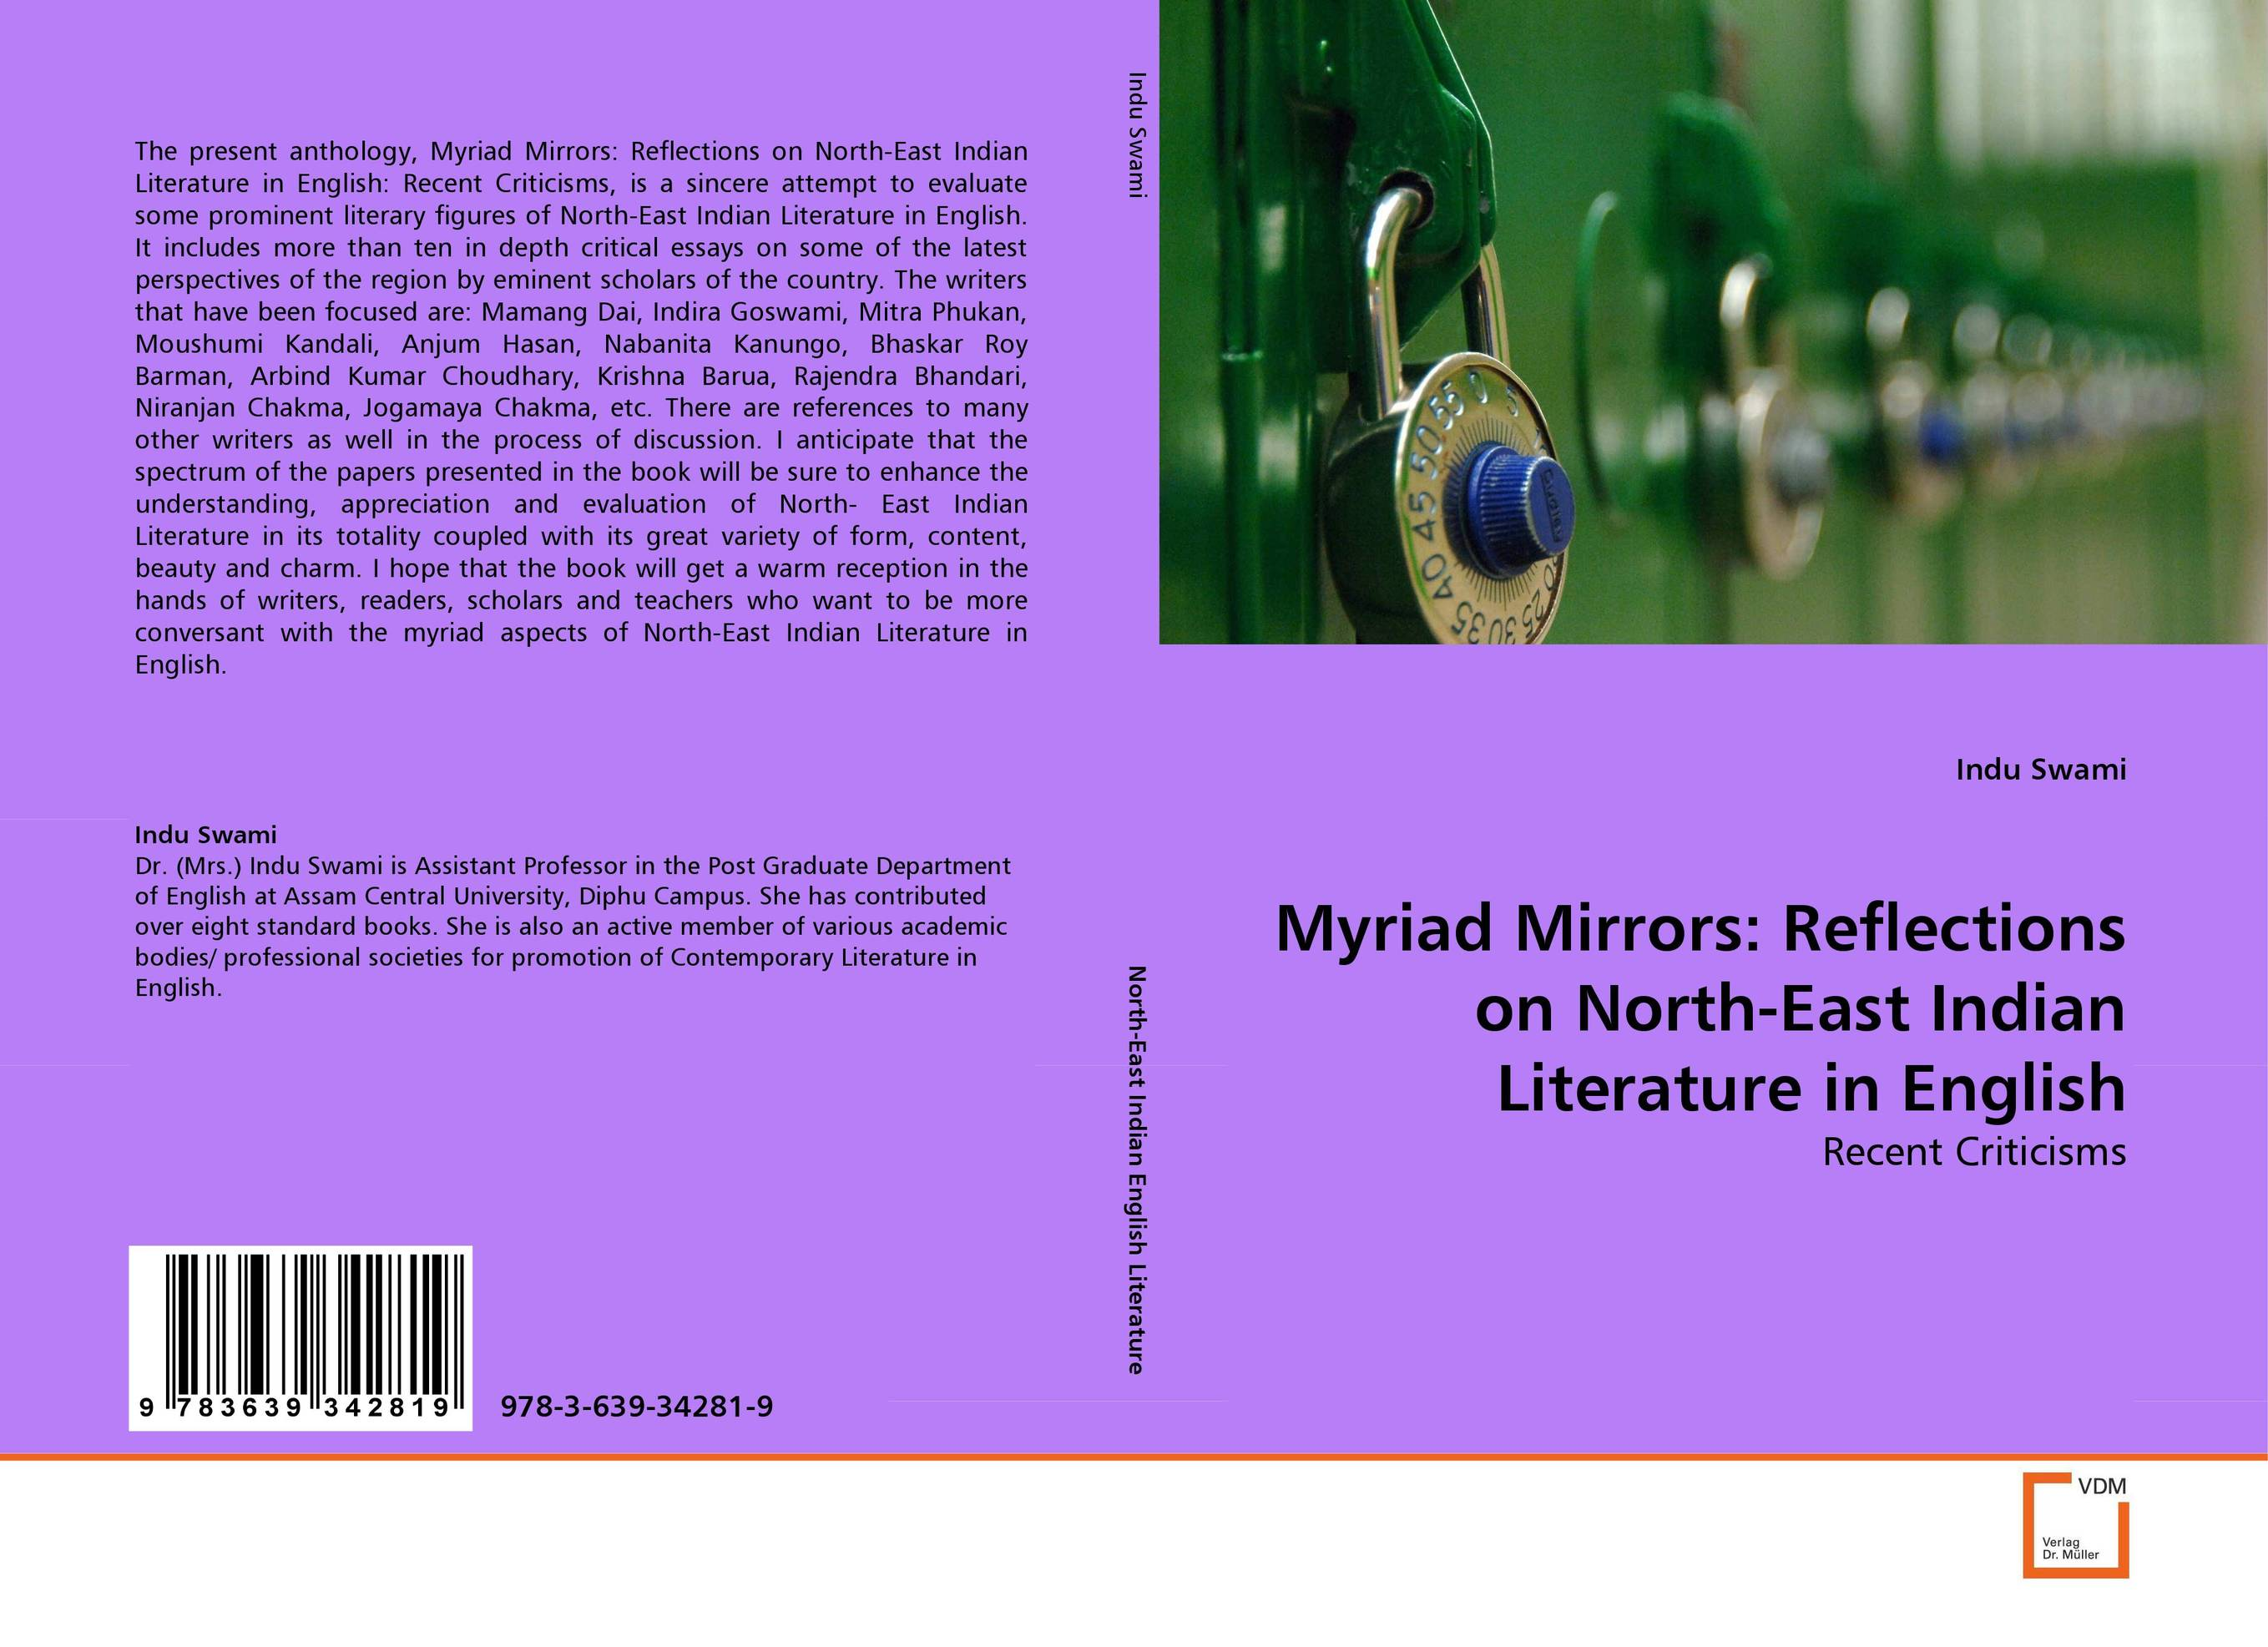 Myriad Mirrors: Reflections on North-East Indian Literature in English myriad mirrors reflections on north east indian literature in english